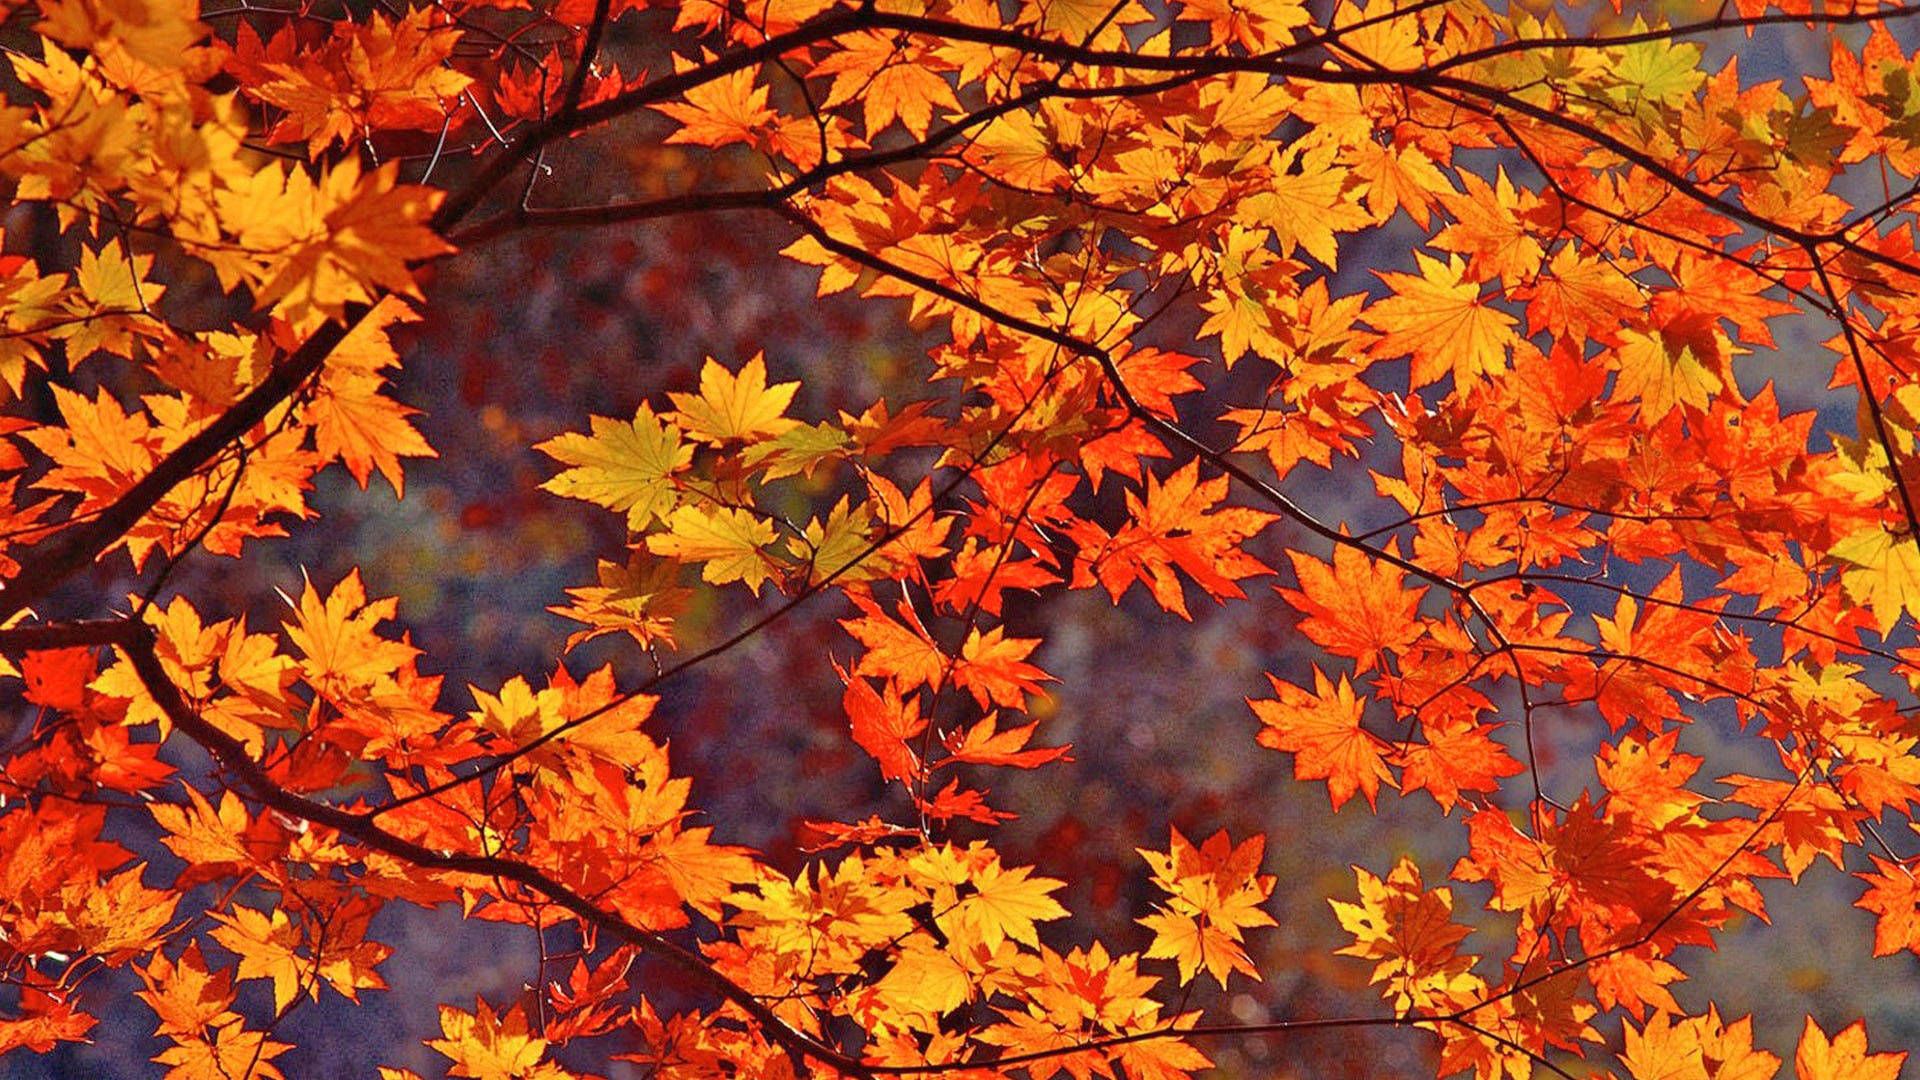 Fall Leaves HD Wallpaper 1920x1080